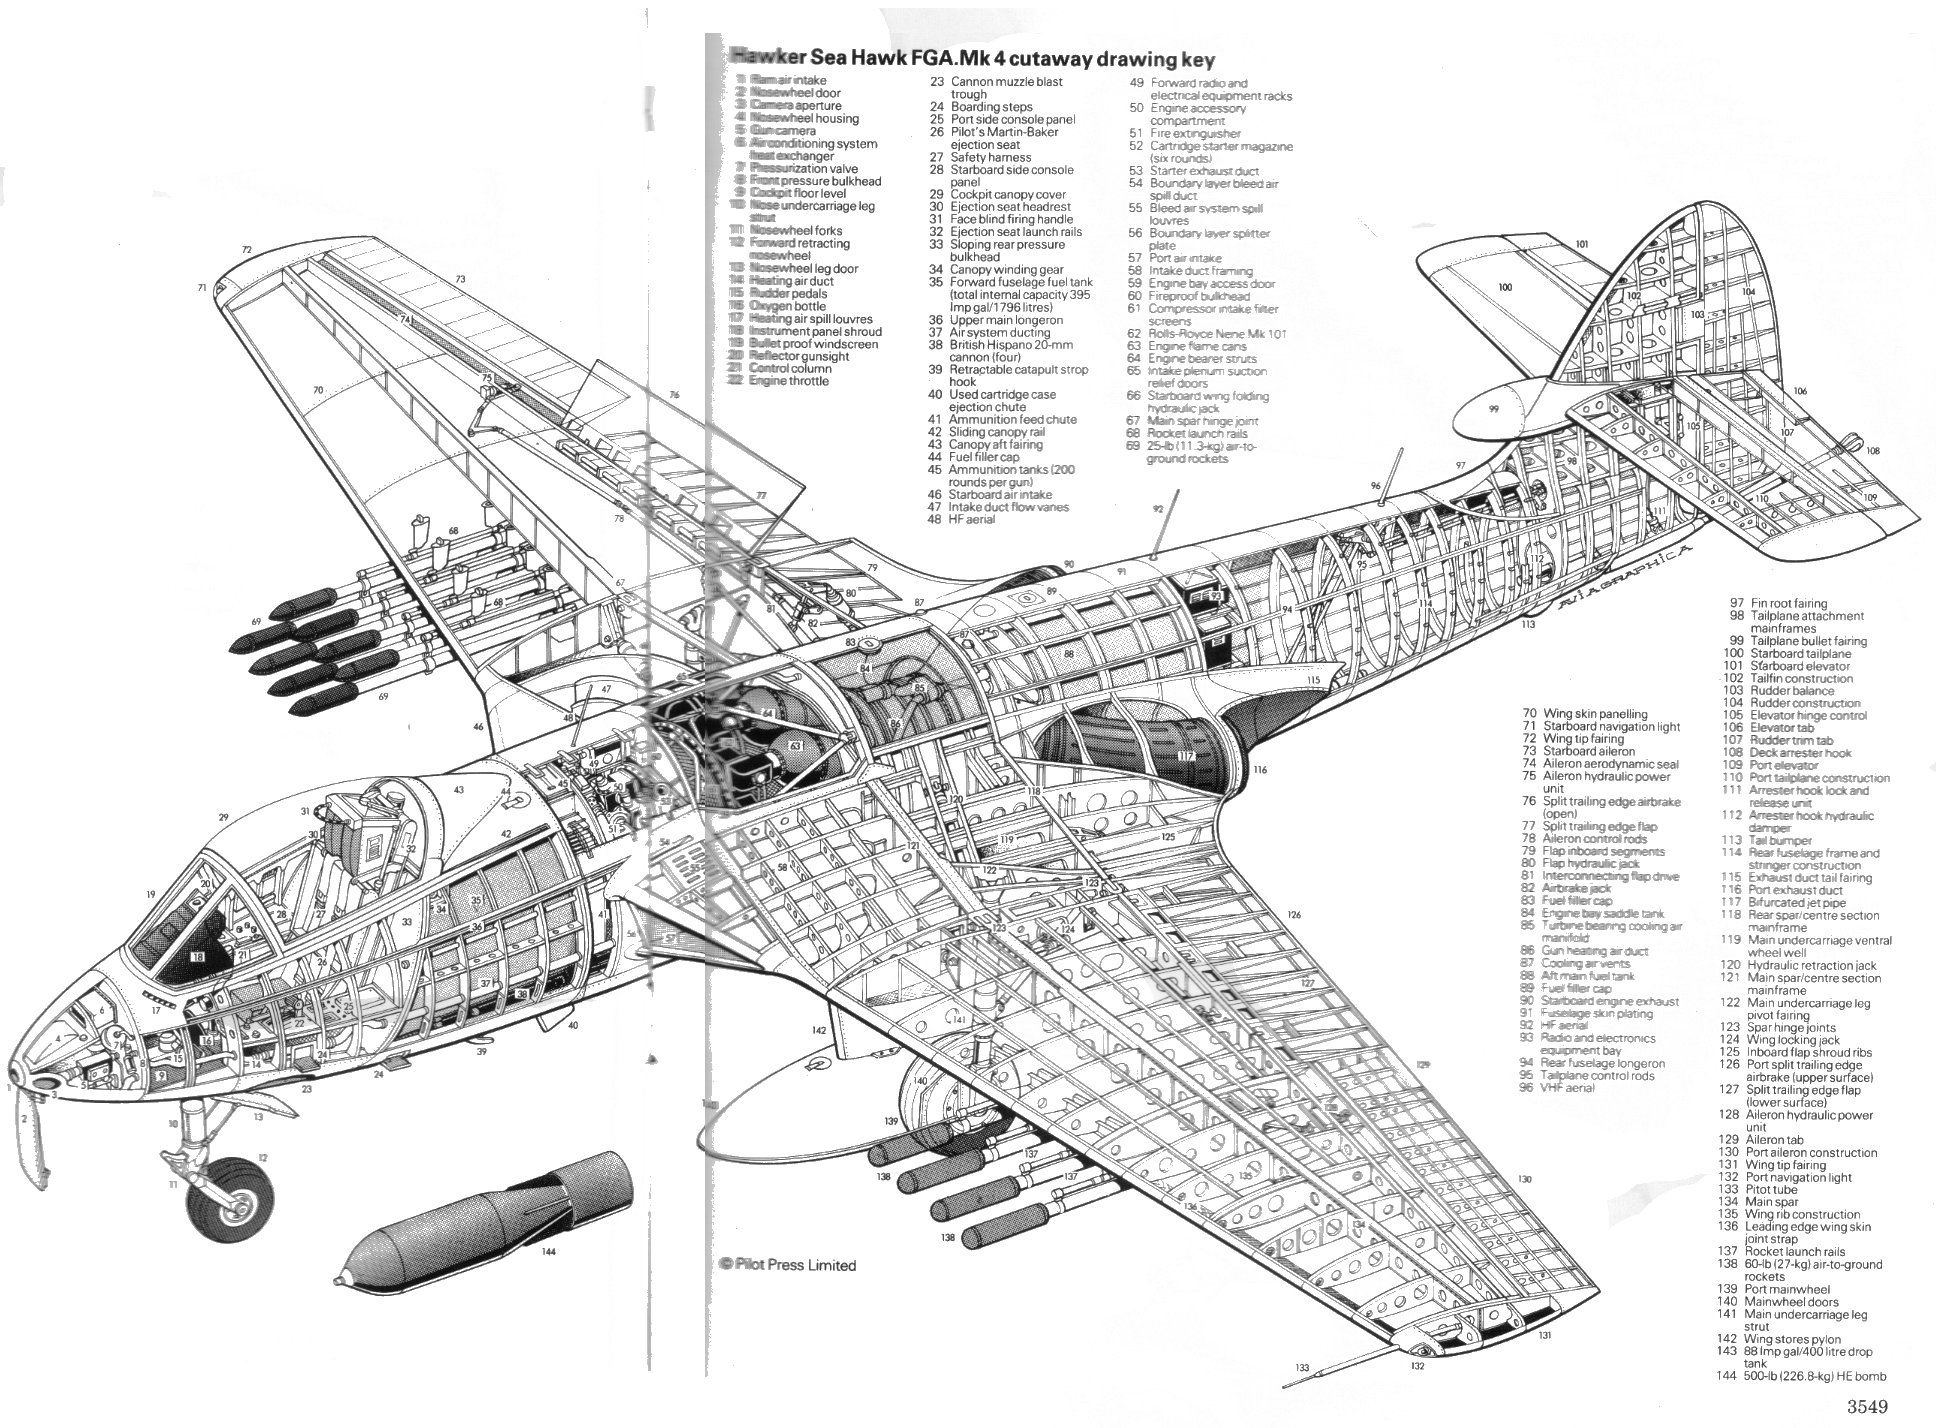 Hawker Sea Hawk Fga4 Cutaway Drawing Key